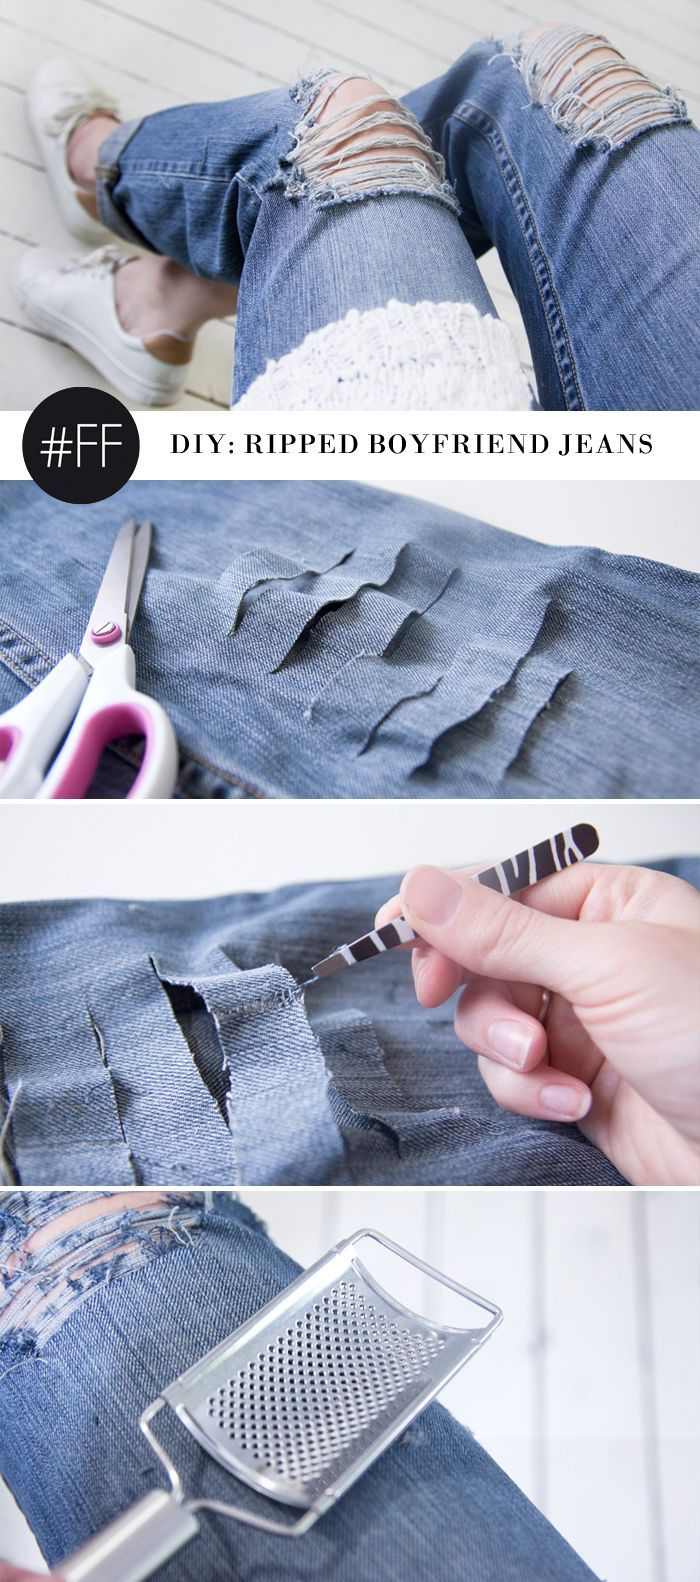 17 Best ideas about Diy Ripped Jeans on Pinterest | Diy distressed ...